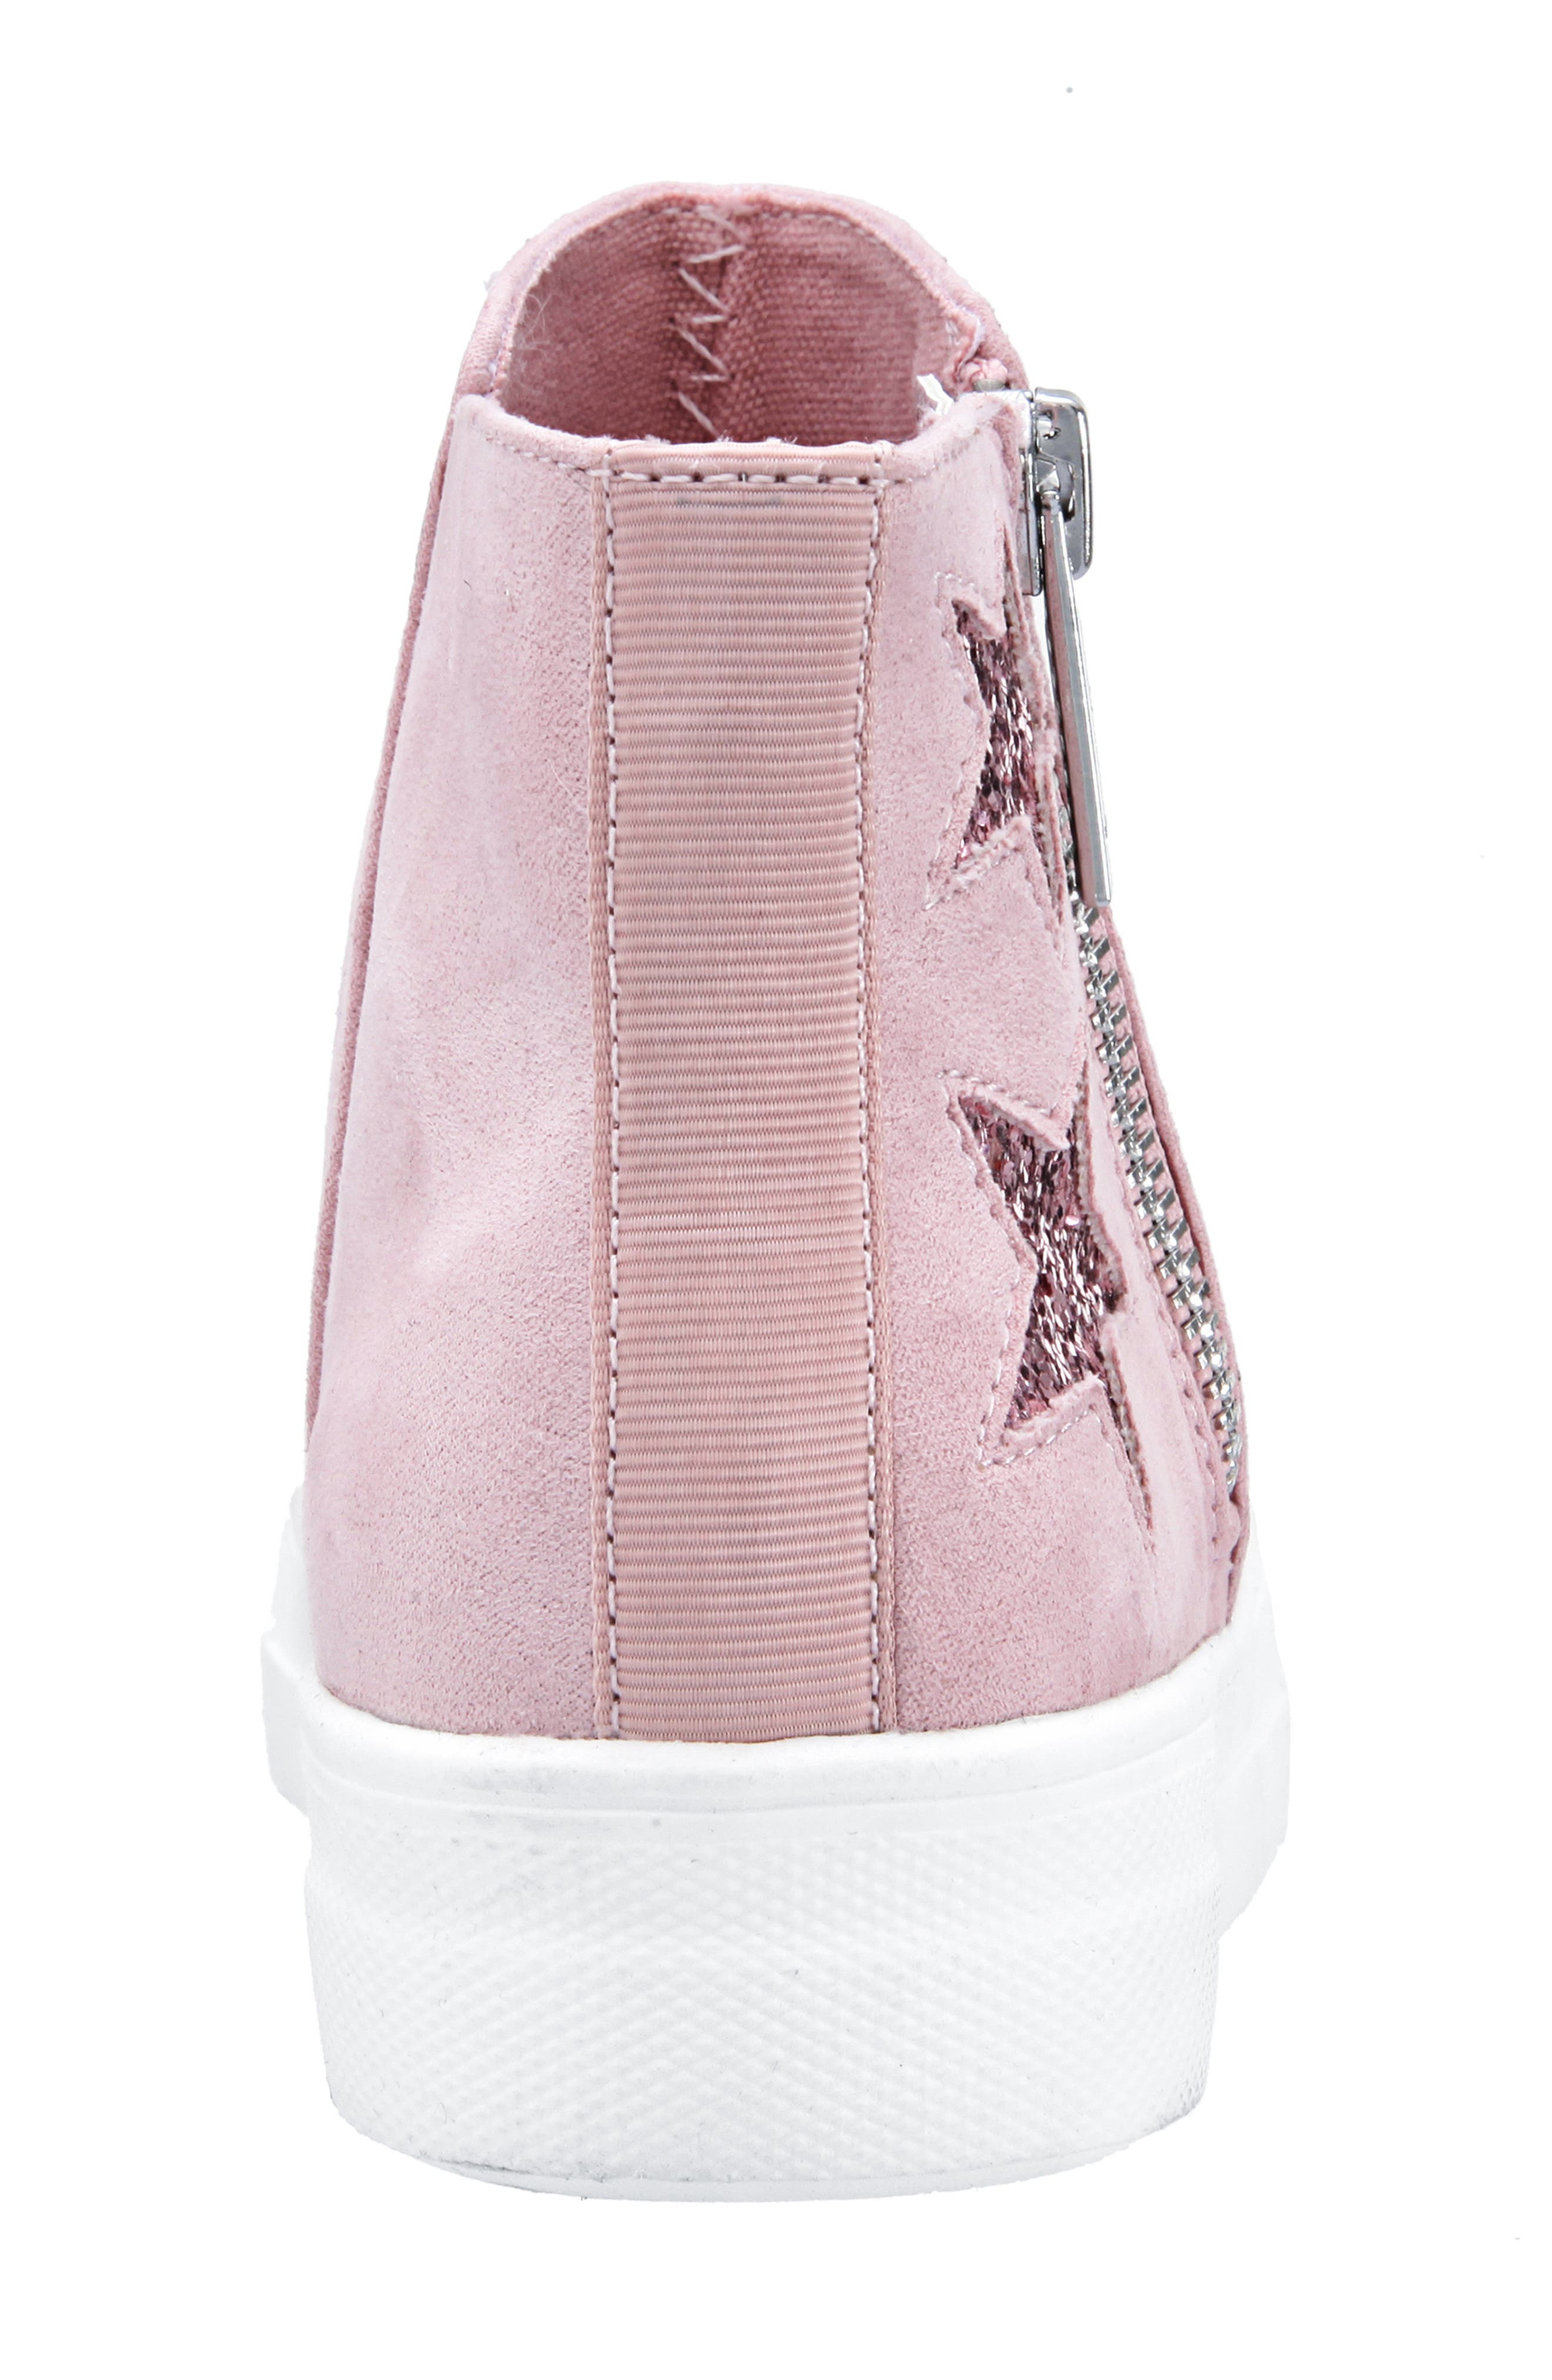 Jacqui Glitter High Top Sneaker,                             Alternate thumbnail 7, color,                             BLUSH MICRO SUEDE